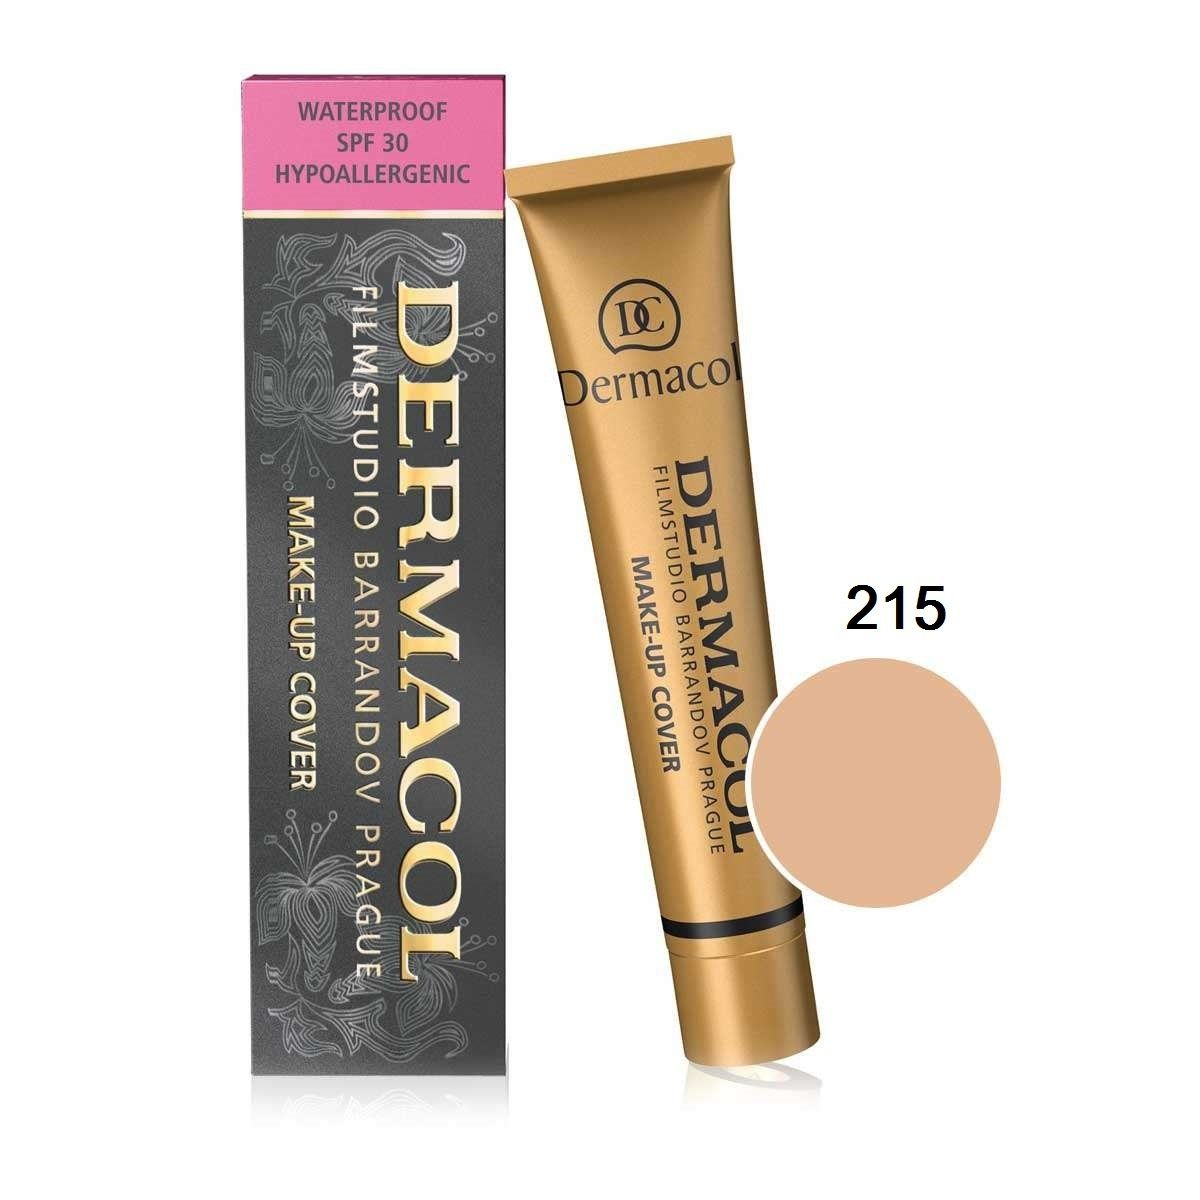 Dermacol makeup cover waterproof hypoallergenic for all